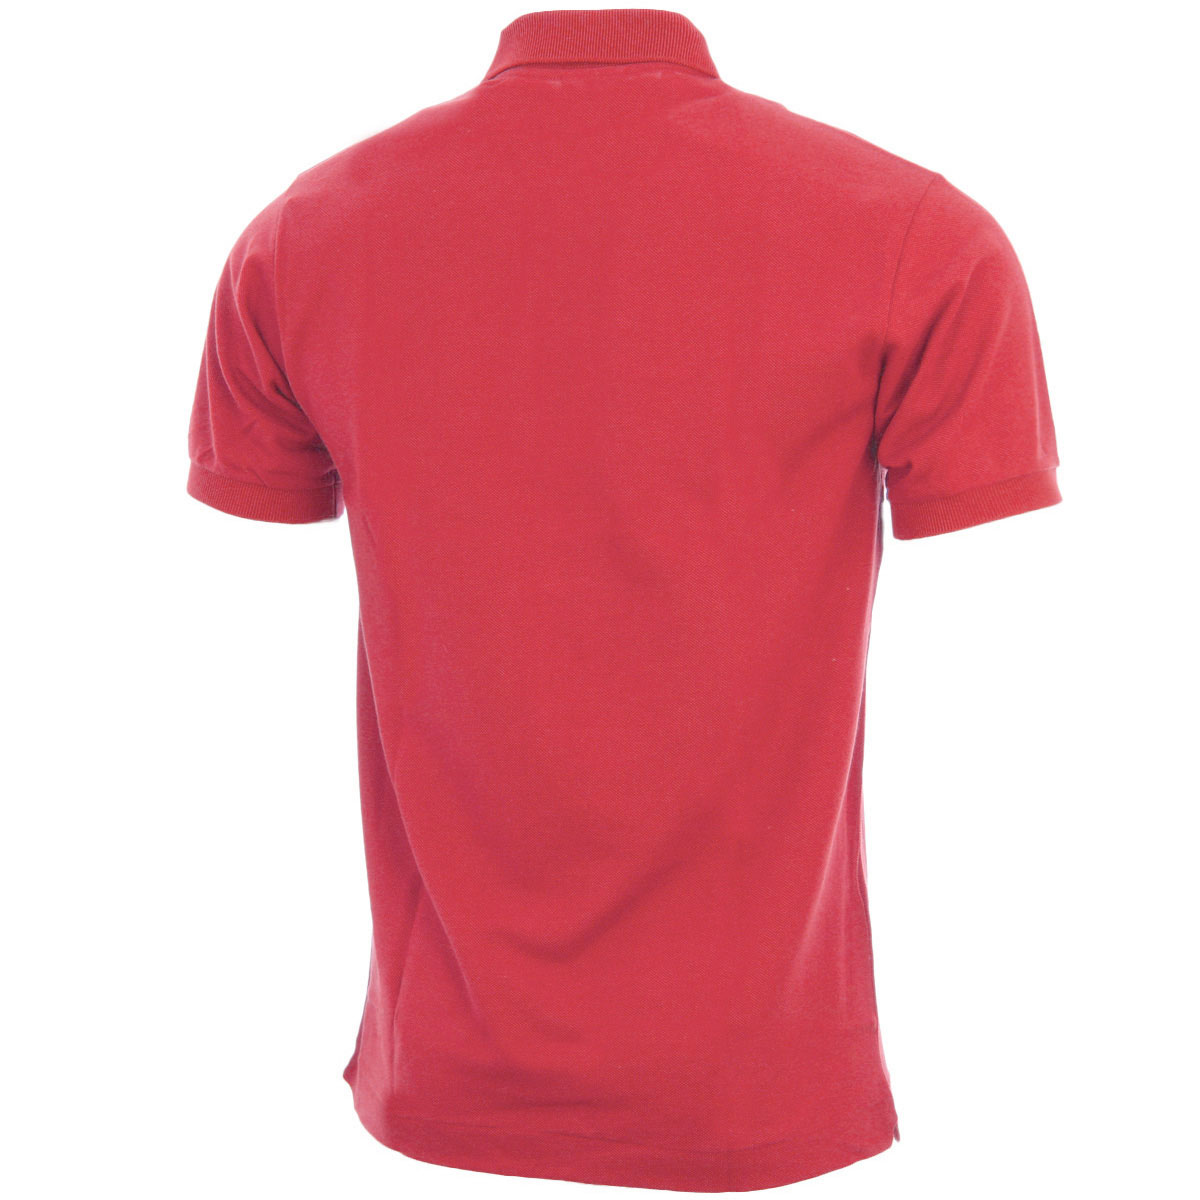 Lacoste-Mens-Classic-Cotton-L1212-Short-Sleeve-Polo-Shirt-31-OFF-RRP thumbnail 51